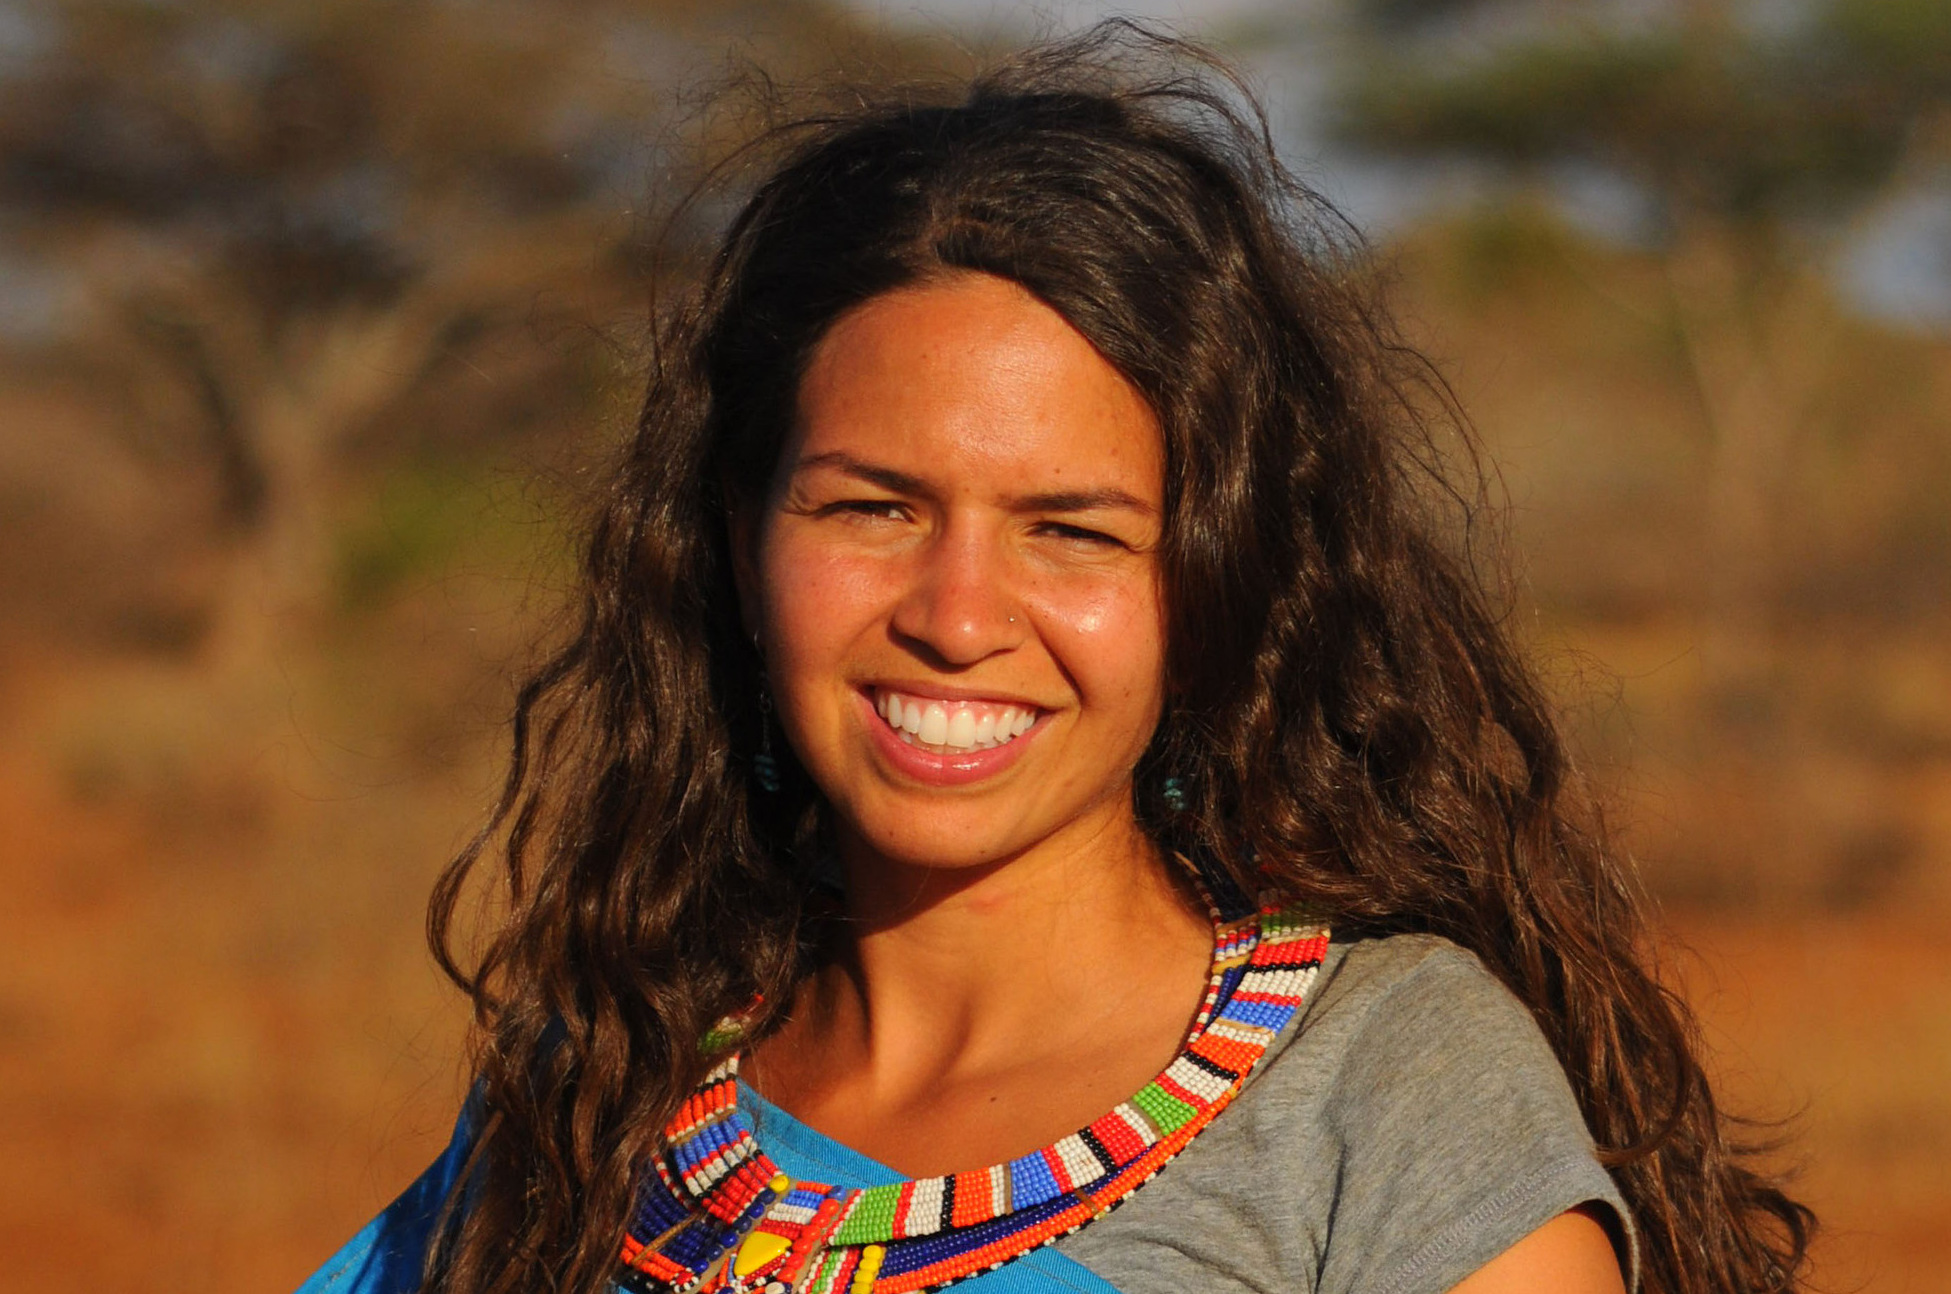 LEELA HAZZAH, PhD    is Executive Director and Co-founder of Lion Guardians. Leela has worked on conservation issues in East Africa for more than 15 years, where her research focuses on understanding the predictors and motivations behind lion killing in Maasailand, Kenya.     Leela's innovative and culturally appropriate collaborations have seen dramatic results in this region, earning her numerous awards including CNN Heroes, Future for Nature Award, St. Andrews Prize for the Environment, Young Women Conservation Biology Award by the Society for Conservation Biology, Wings WorldQuest Award, Fulbright Fellowship, and Jordan Prize for African Studies. Leela received her PhD from University of Wisconsin, Madison and serves as an affiliate faculty member at Colorado State University and University of Cape Town. Leela possesses an intense passion and drive to continue strengthening and expanding her efforts to protect lions living on community lands.